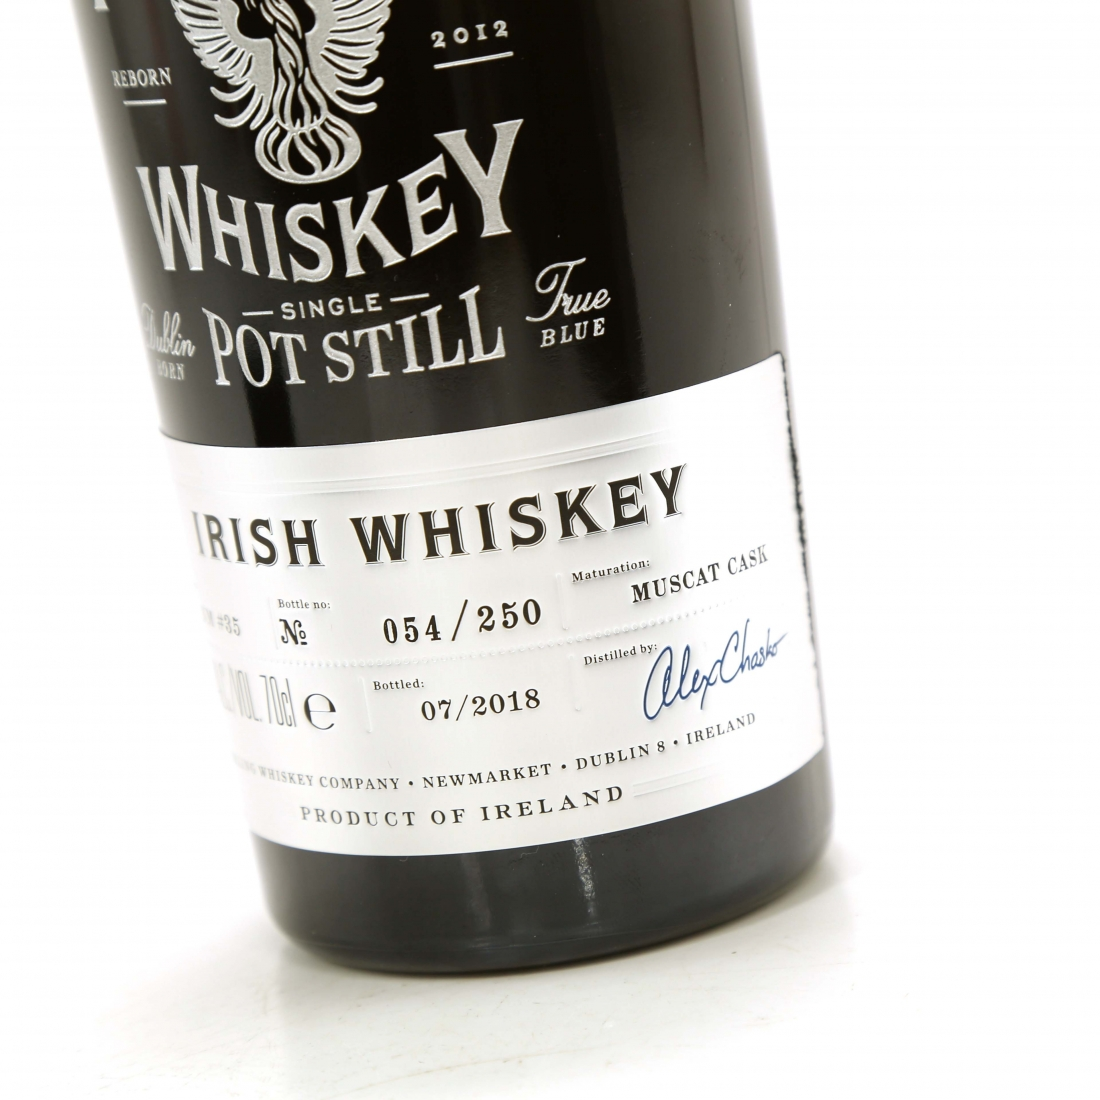 Teeling Celebratory Single Pot Still Whiskey / Bottle #054